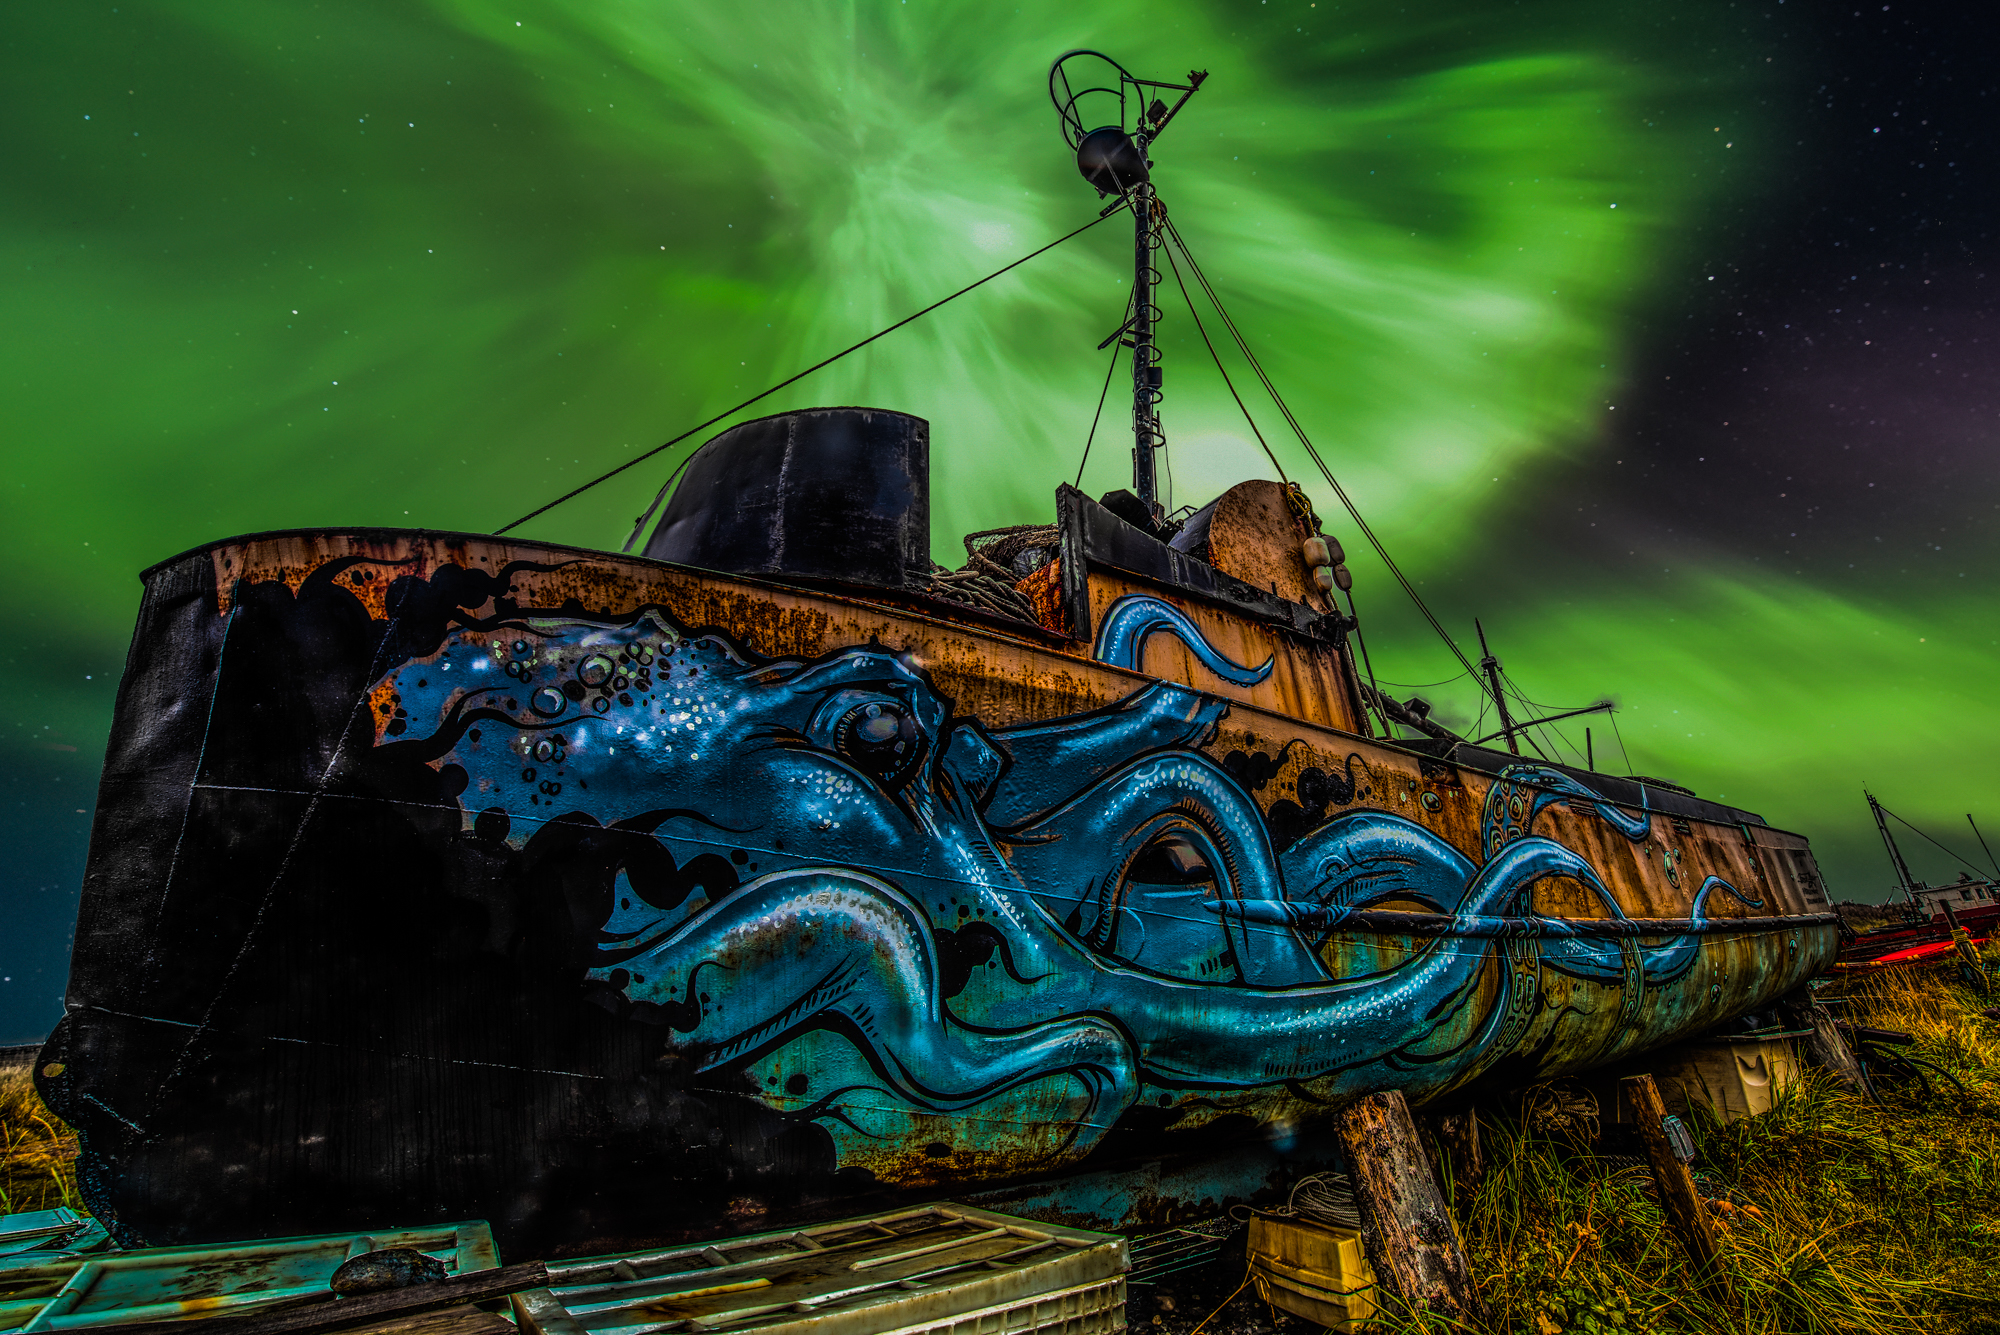 I photographed this abandoned ship in Homer, AK and I combined it with a northern lights photo I took the first night of my trip to make this powerful composite image.